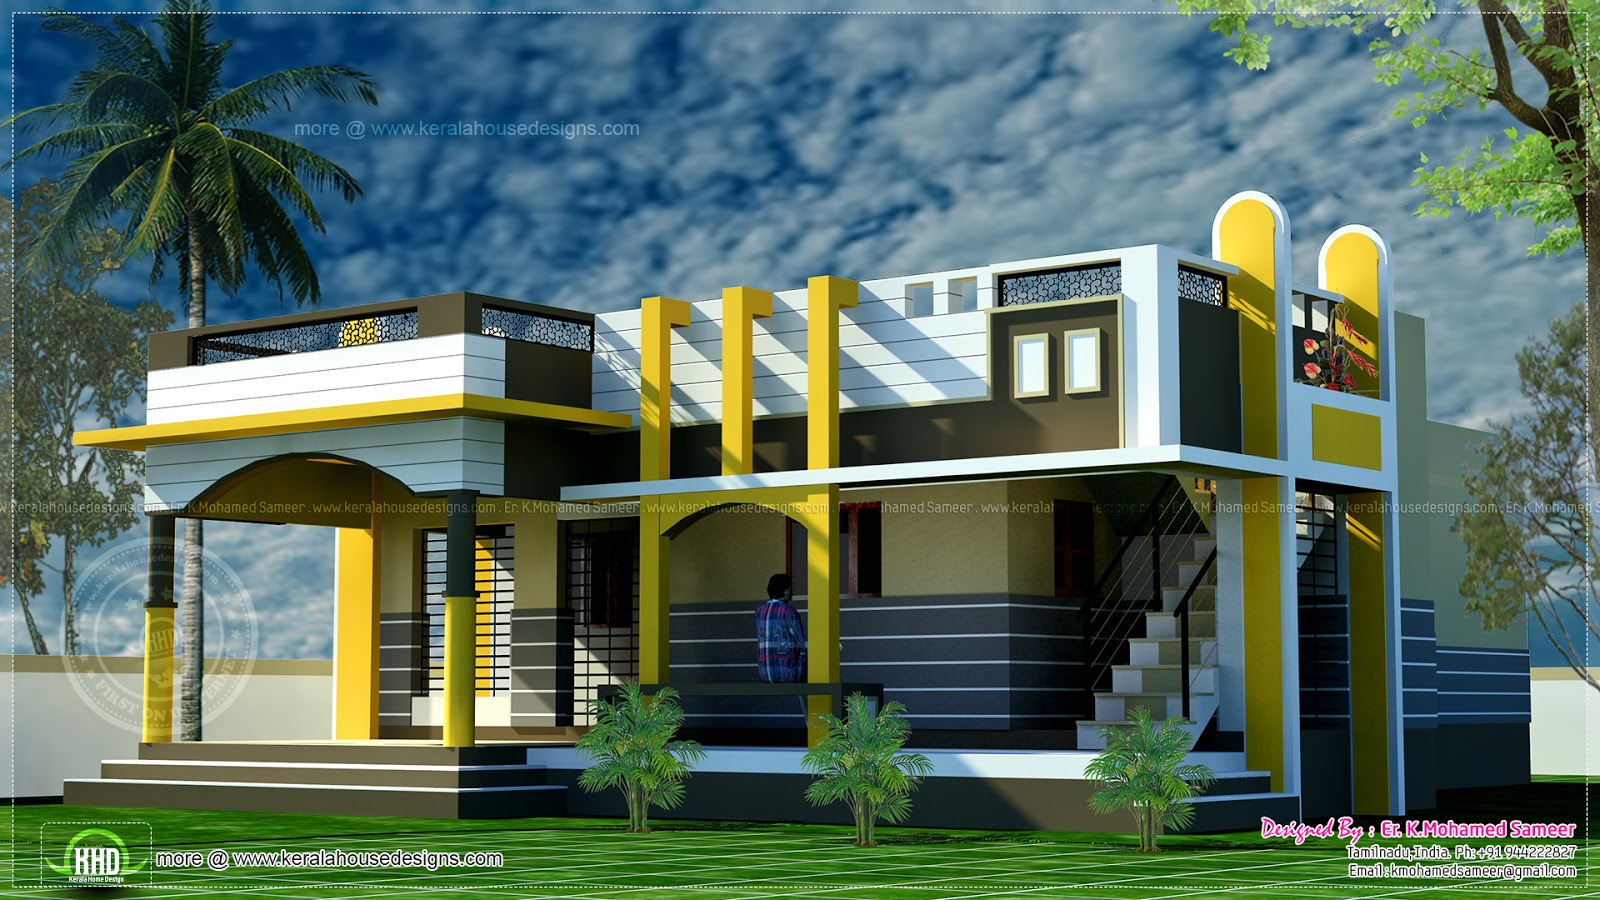 Small house design contemporary style kerala home design and floor plans for Home design philippines small area